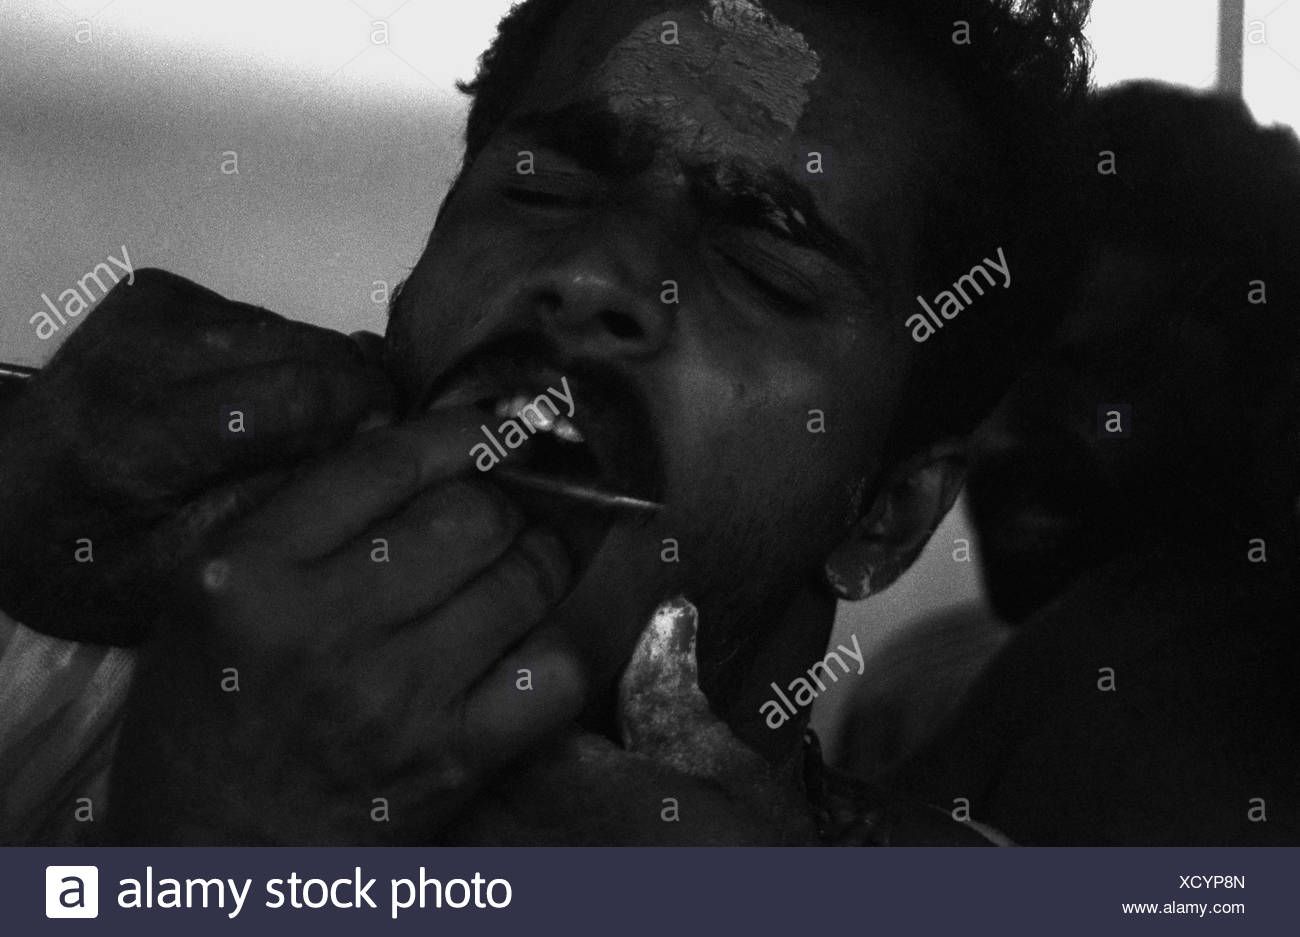 Boy experiencing pain - Stock Image